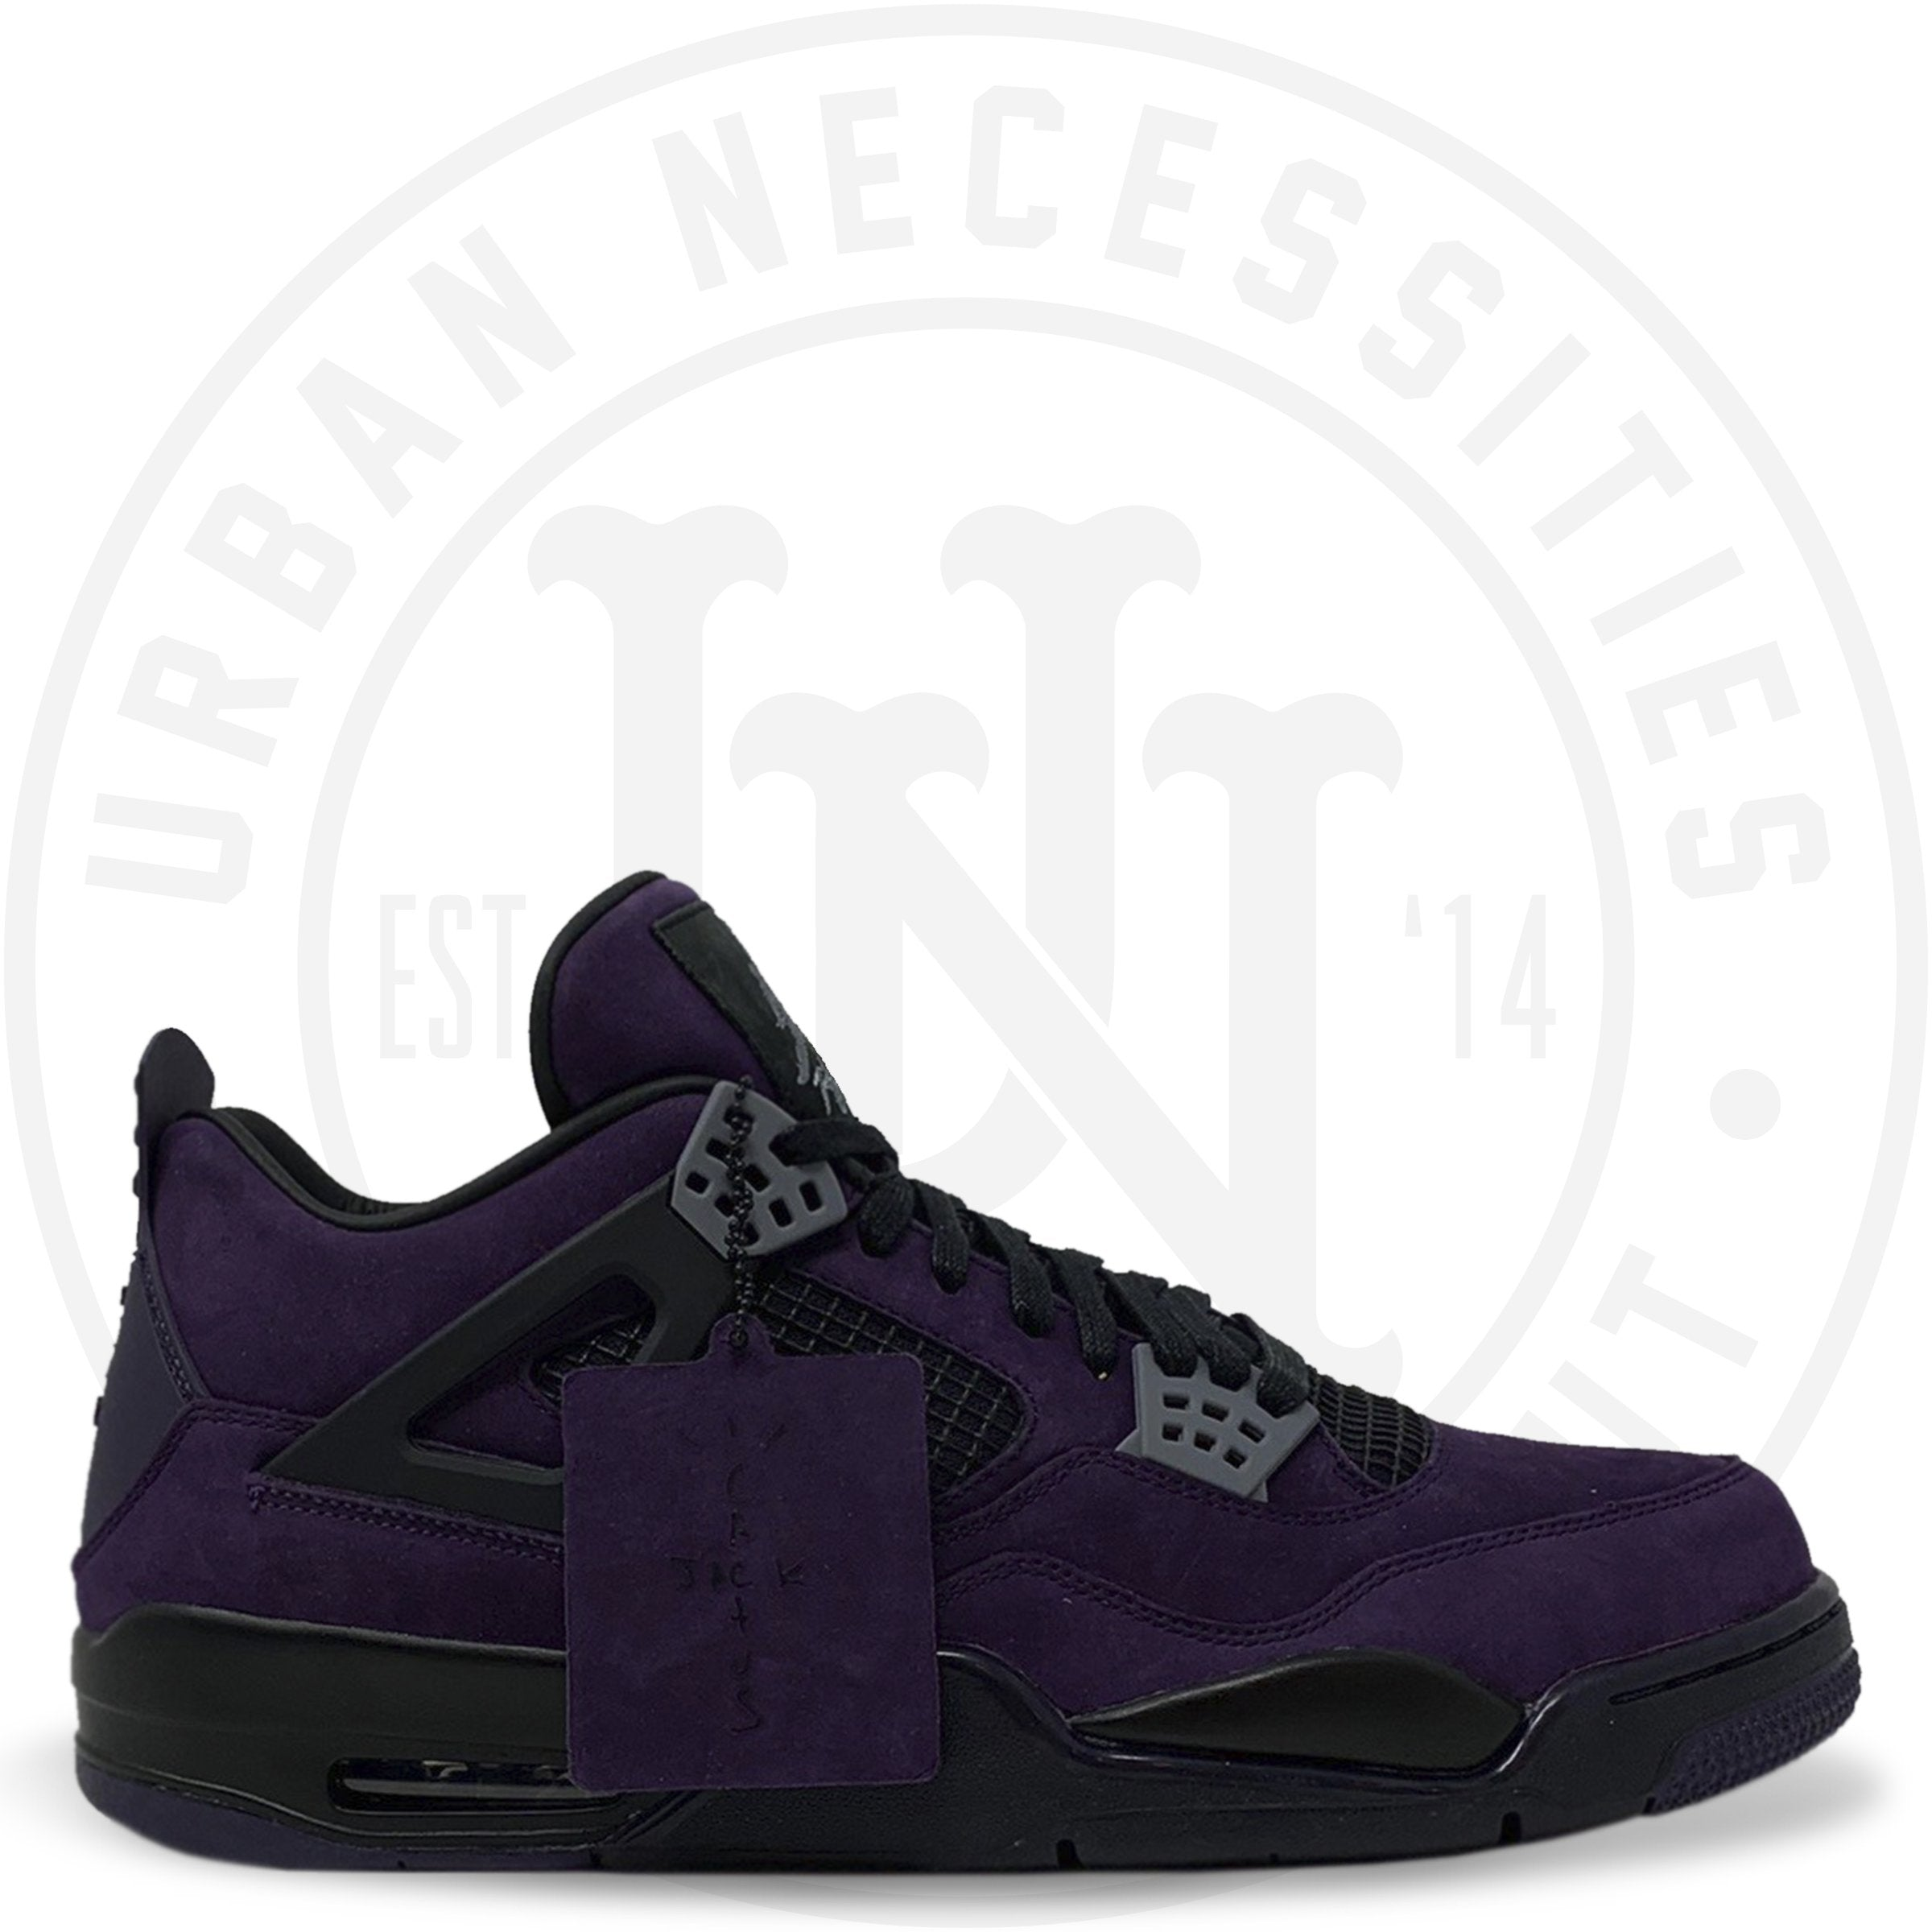 low cost b23c4 43ab0 Travis Scott x Air Jordan 4 Retro 'Purple Dynasty V/Red Black' AJ4-7766041